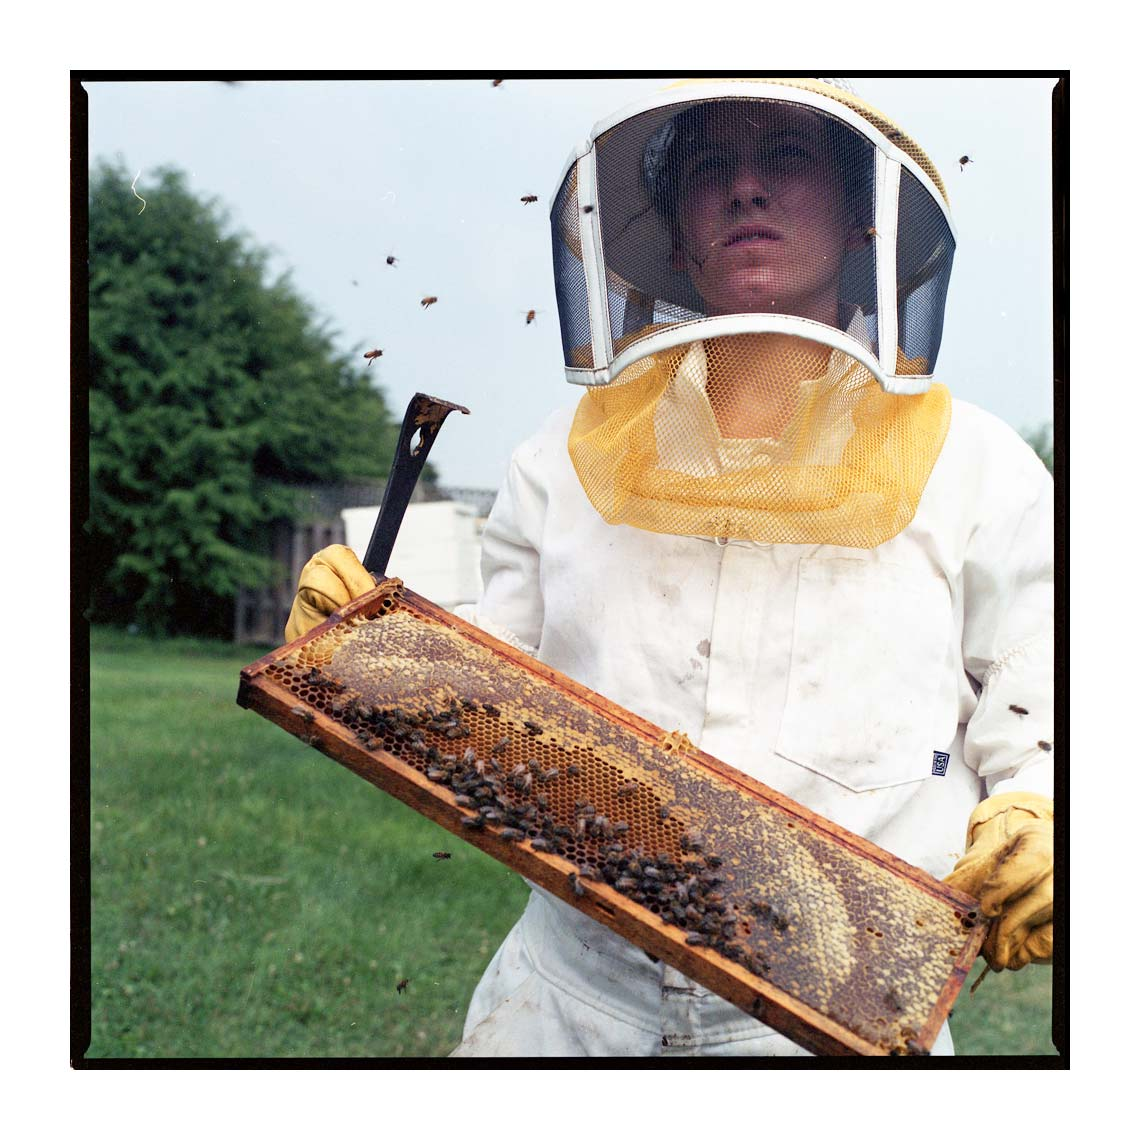 Katie Aerni and her bees